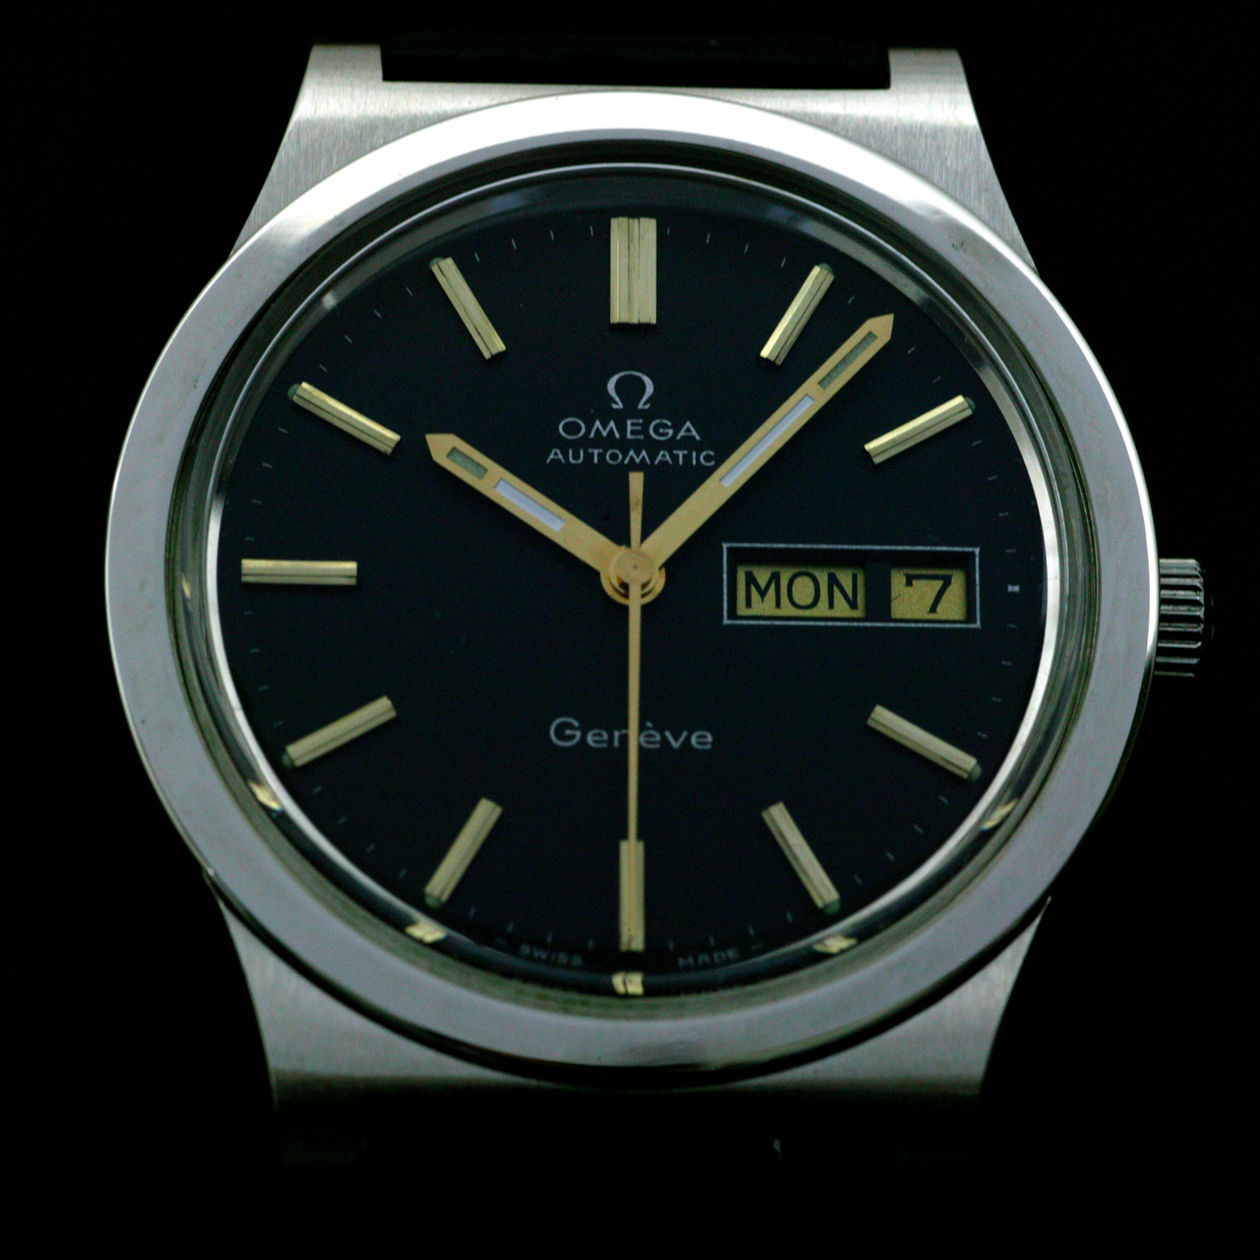 omega watch price guide rh greatestcollectibles com vintage omega watch price guide omega pocket watch price guide